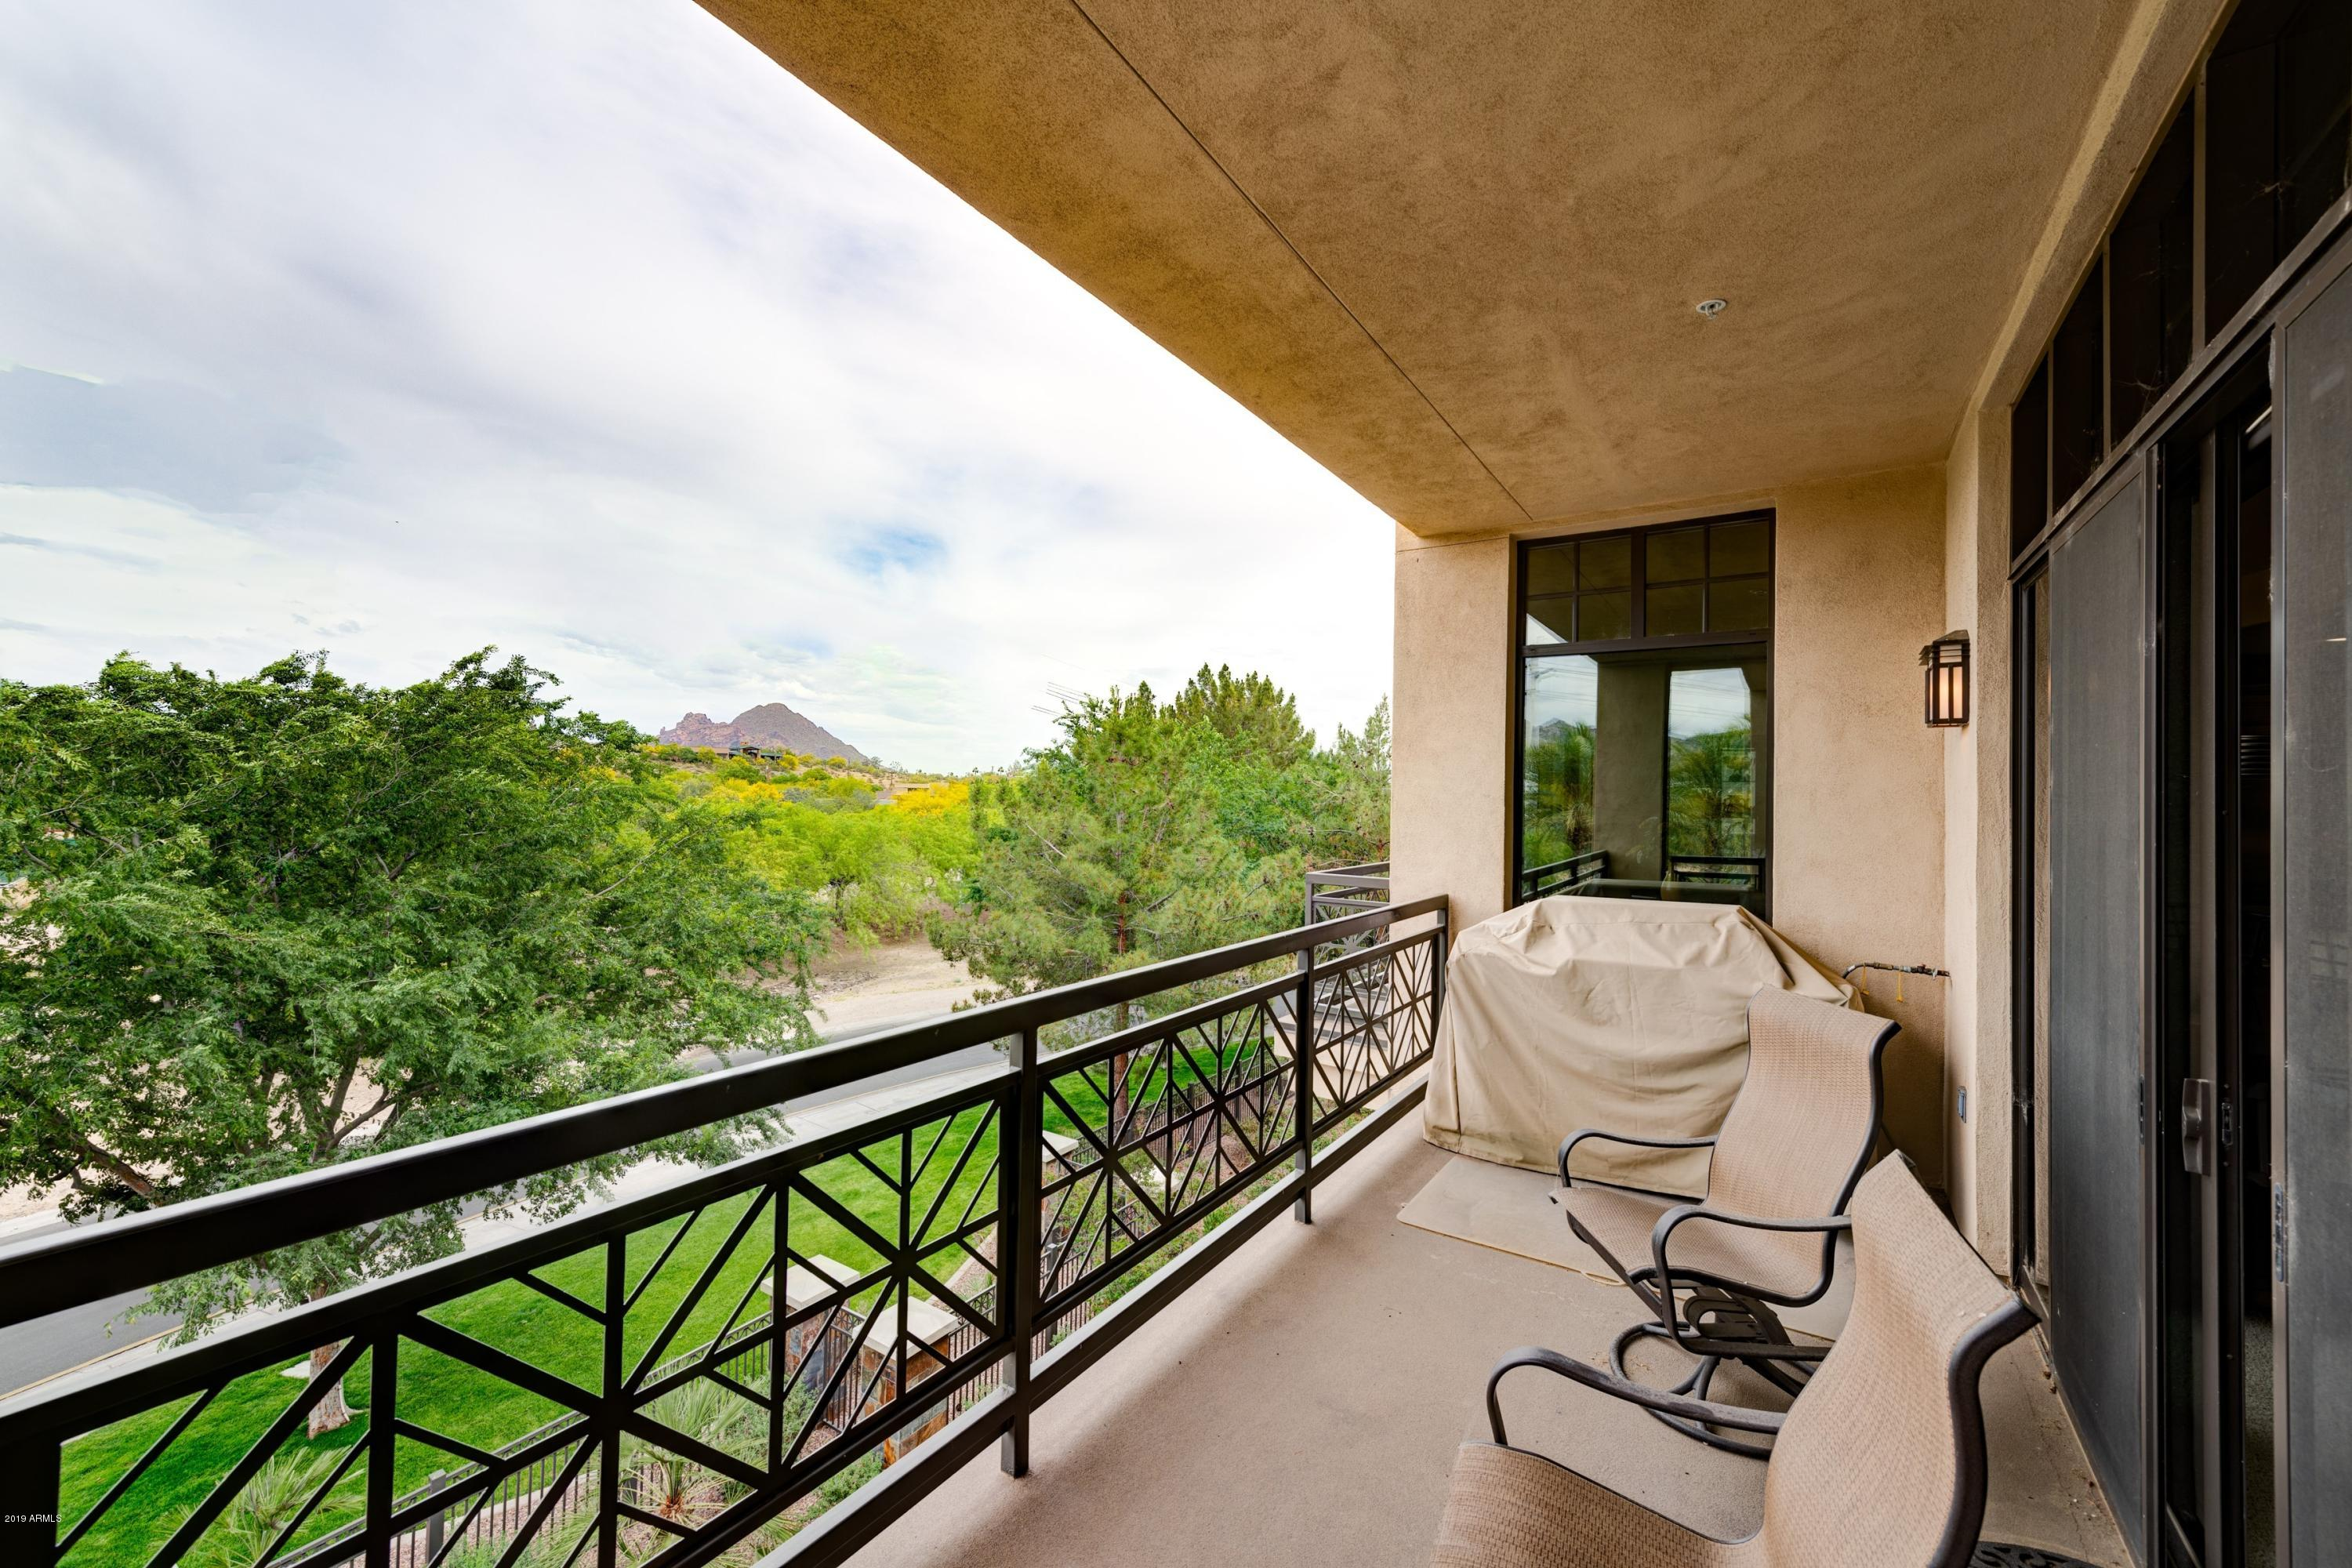 8 E BILTMORE Estate Unit 315, Phoenix AZ 85016